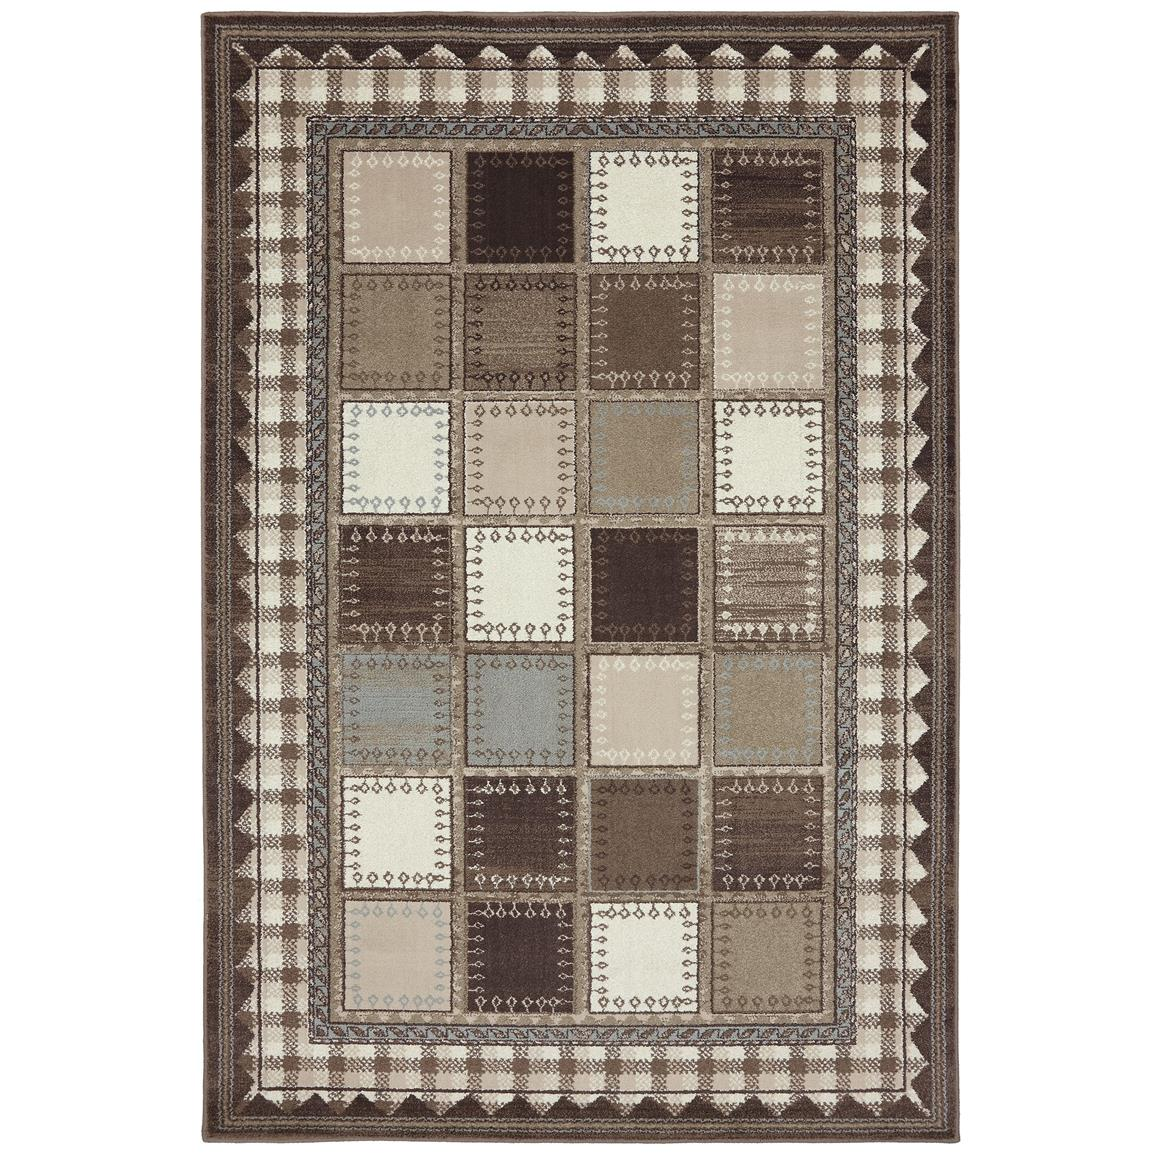 8 foot x 11 foot Woolrich Brown Box Plaid Rug by Mohawk Home